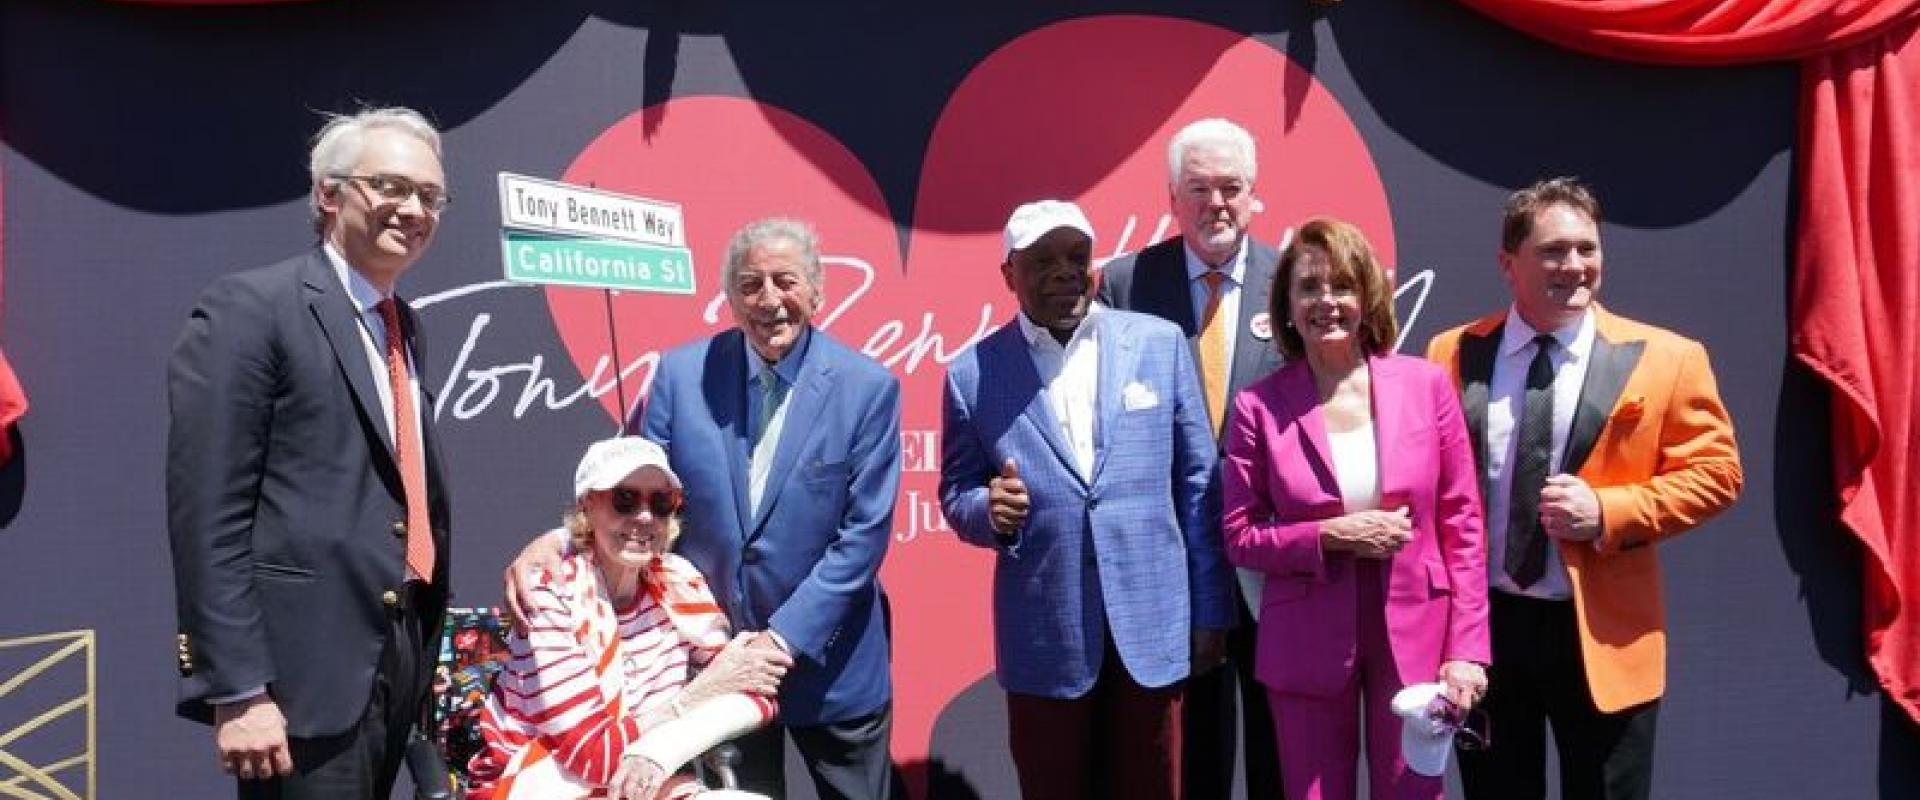 """Congresswoman Pelosi joins fellow San Franciscans to celebrate the unveiling of """"Tony Bennett Way"""" in front of the Fairmont Hotel in San Francisco."""